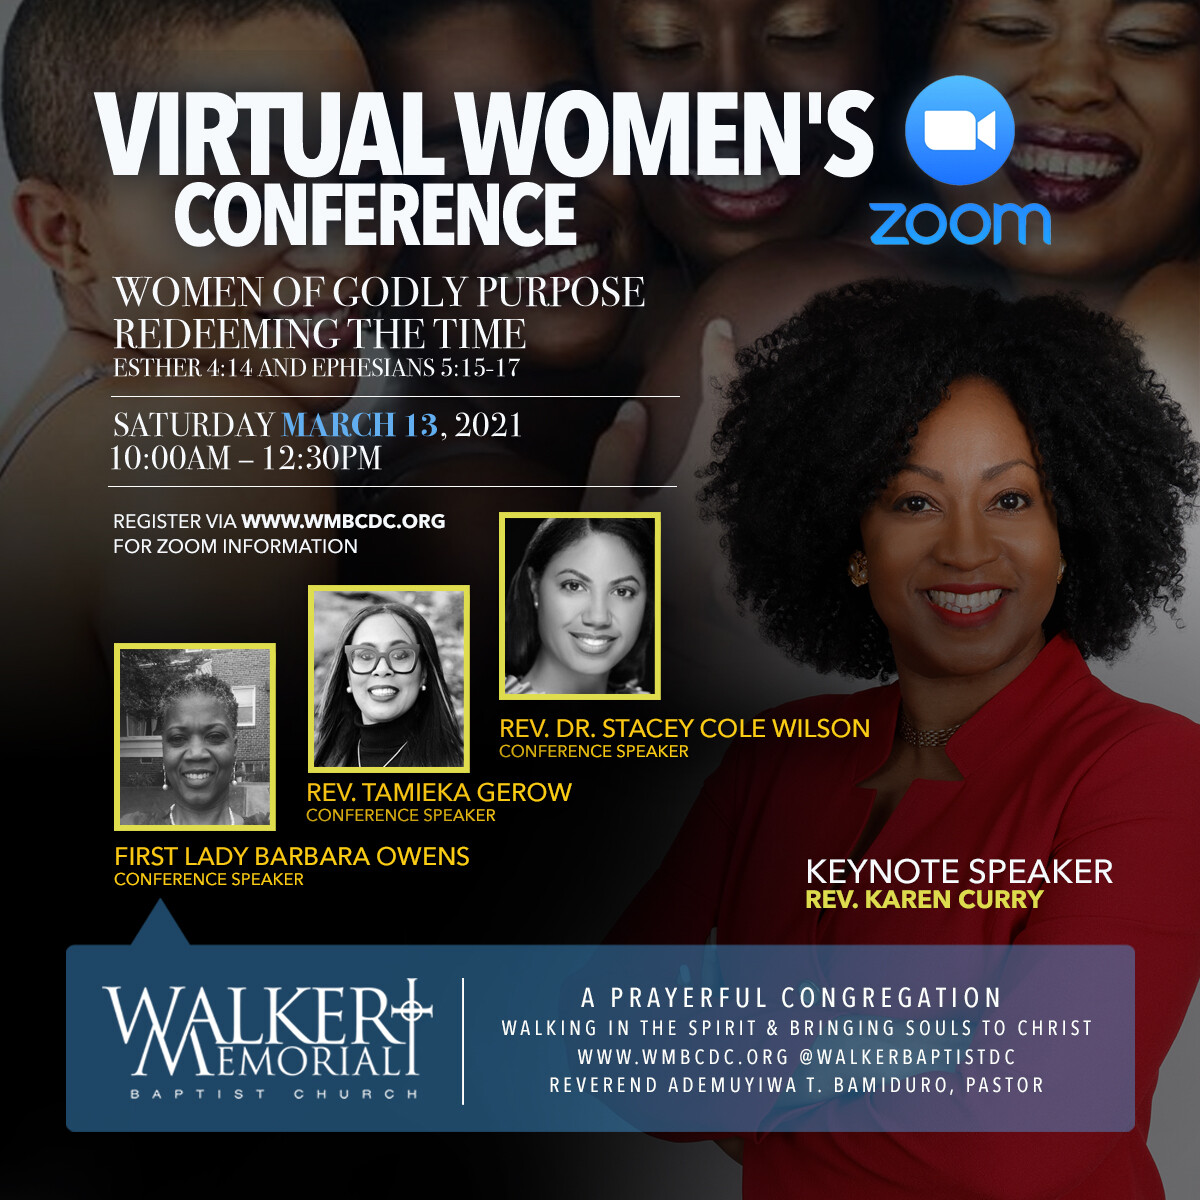 Virtual Women's Day Conference